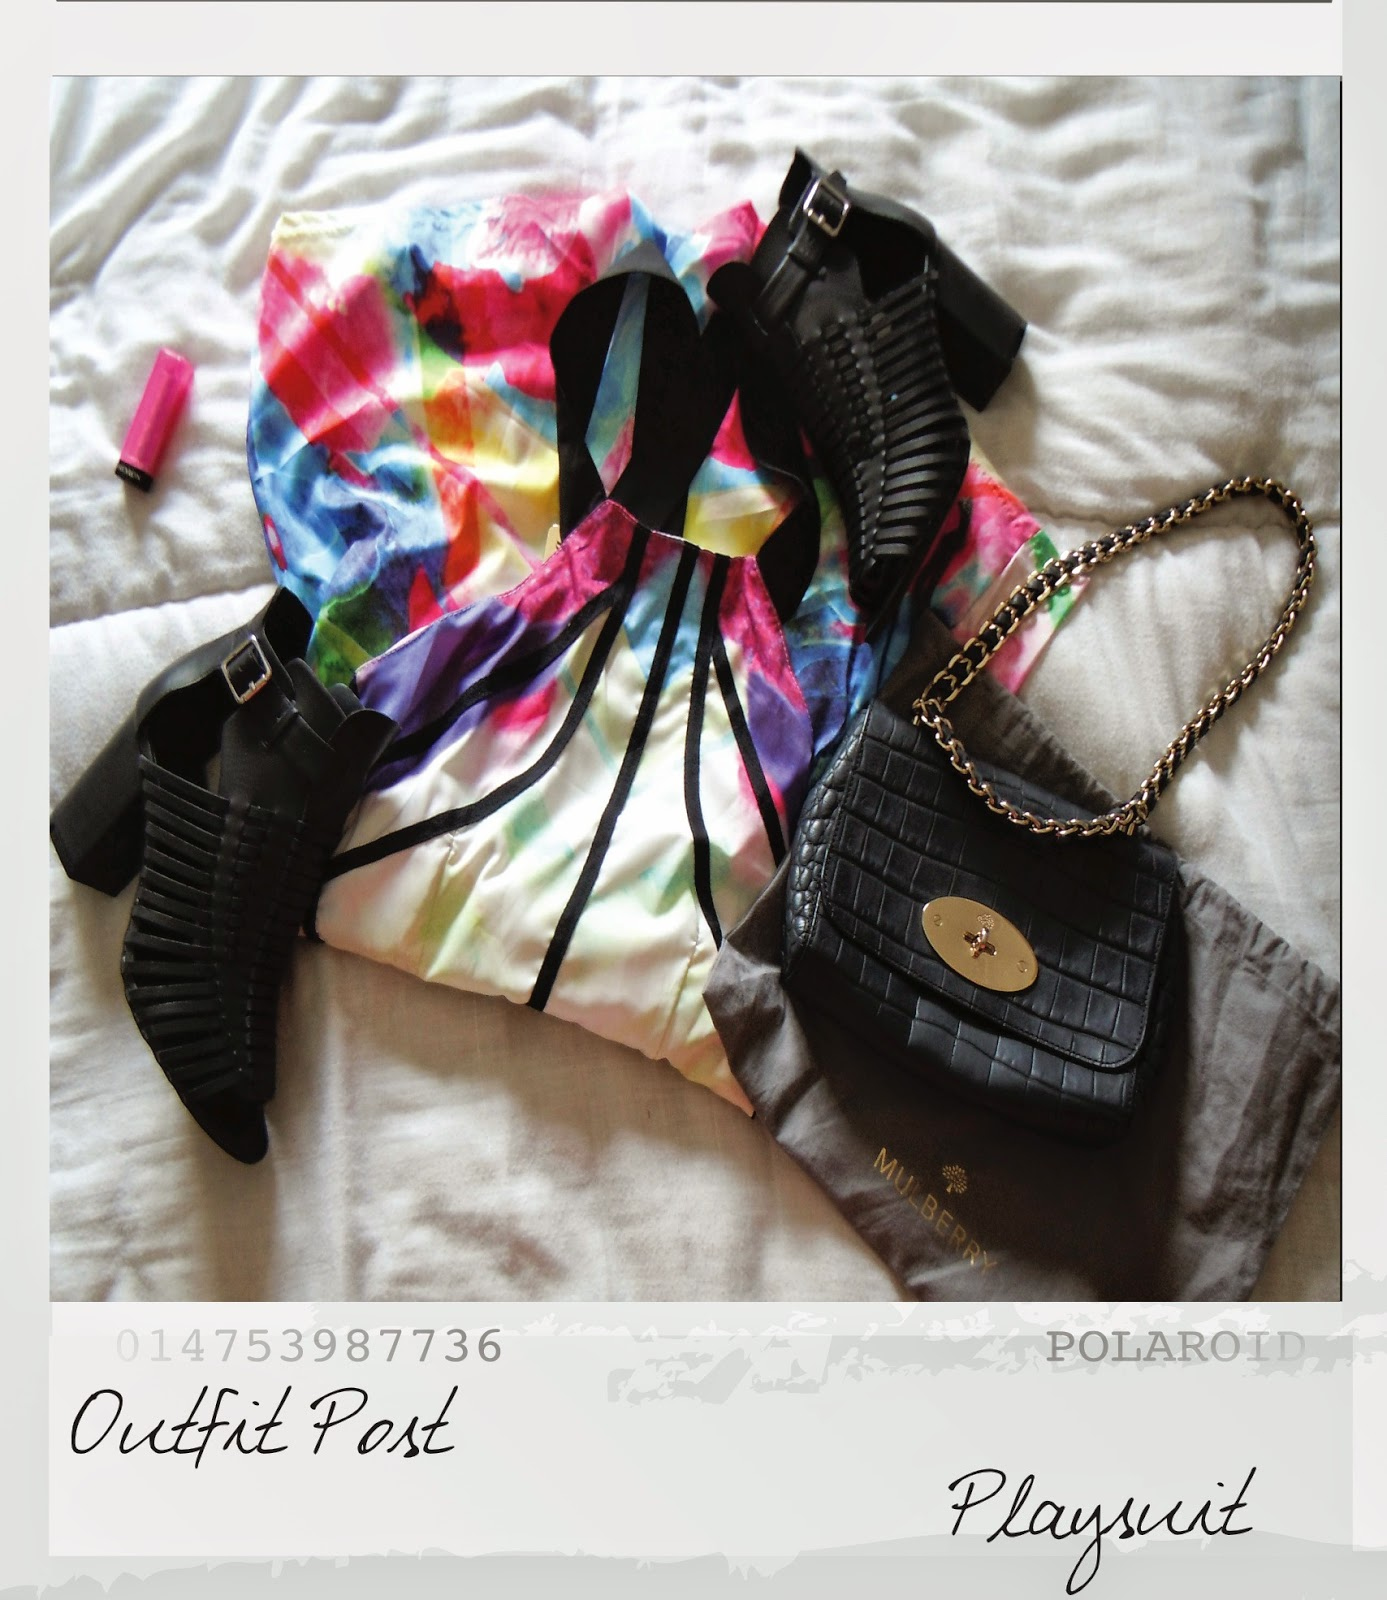 http://www.kellysjournal.co.uk/2014/09/outfit-post-finders-keepers-playsuit.html